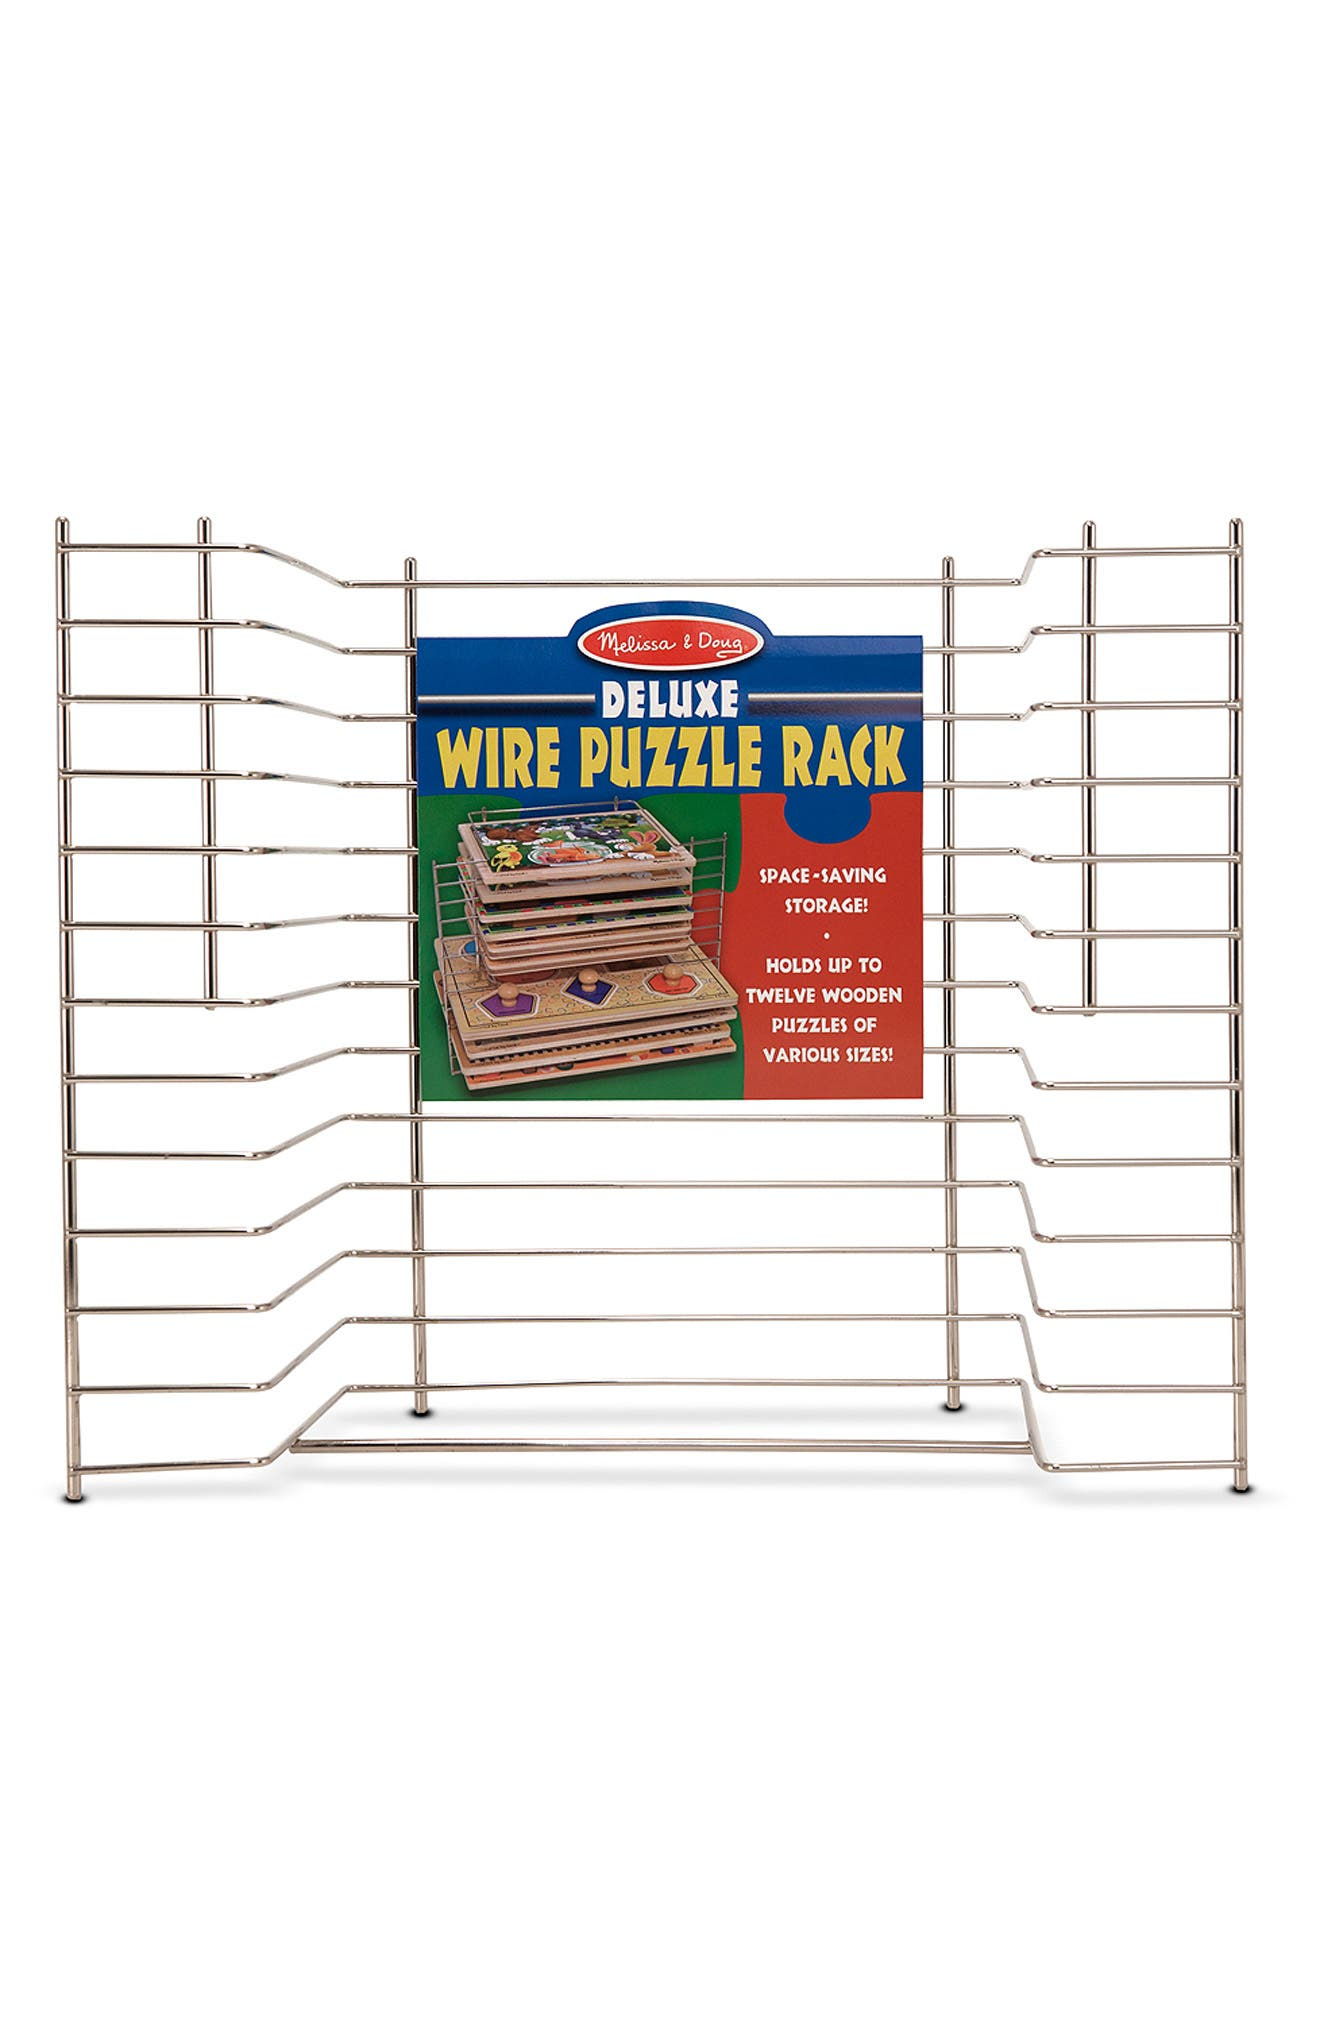 'Deluxe' Wire Puzzle Rack,                             Alternate thumbnail 3, color,                             040